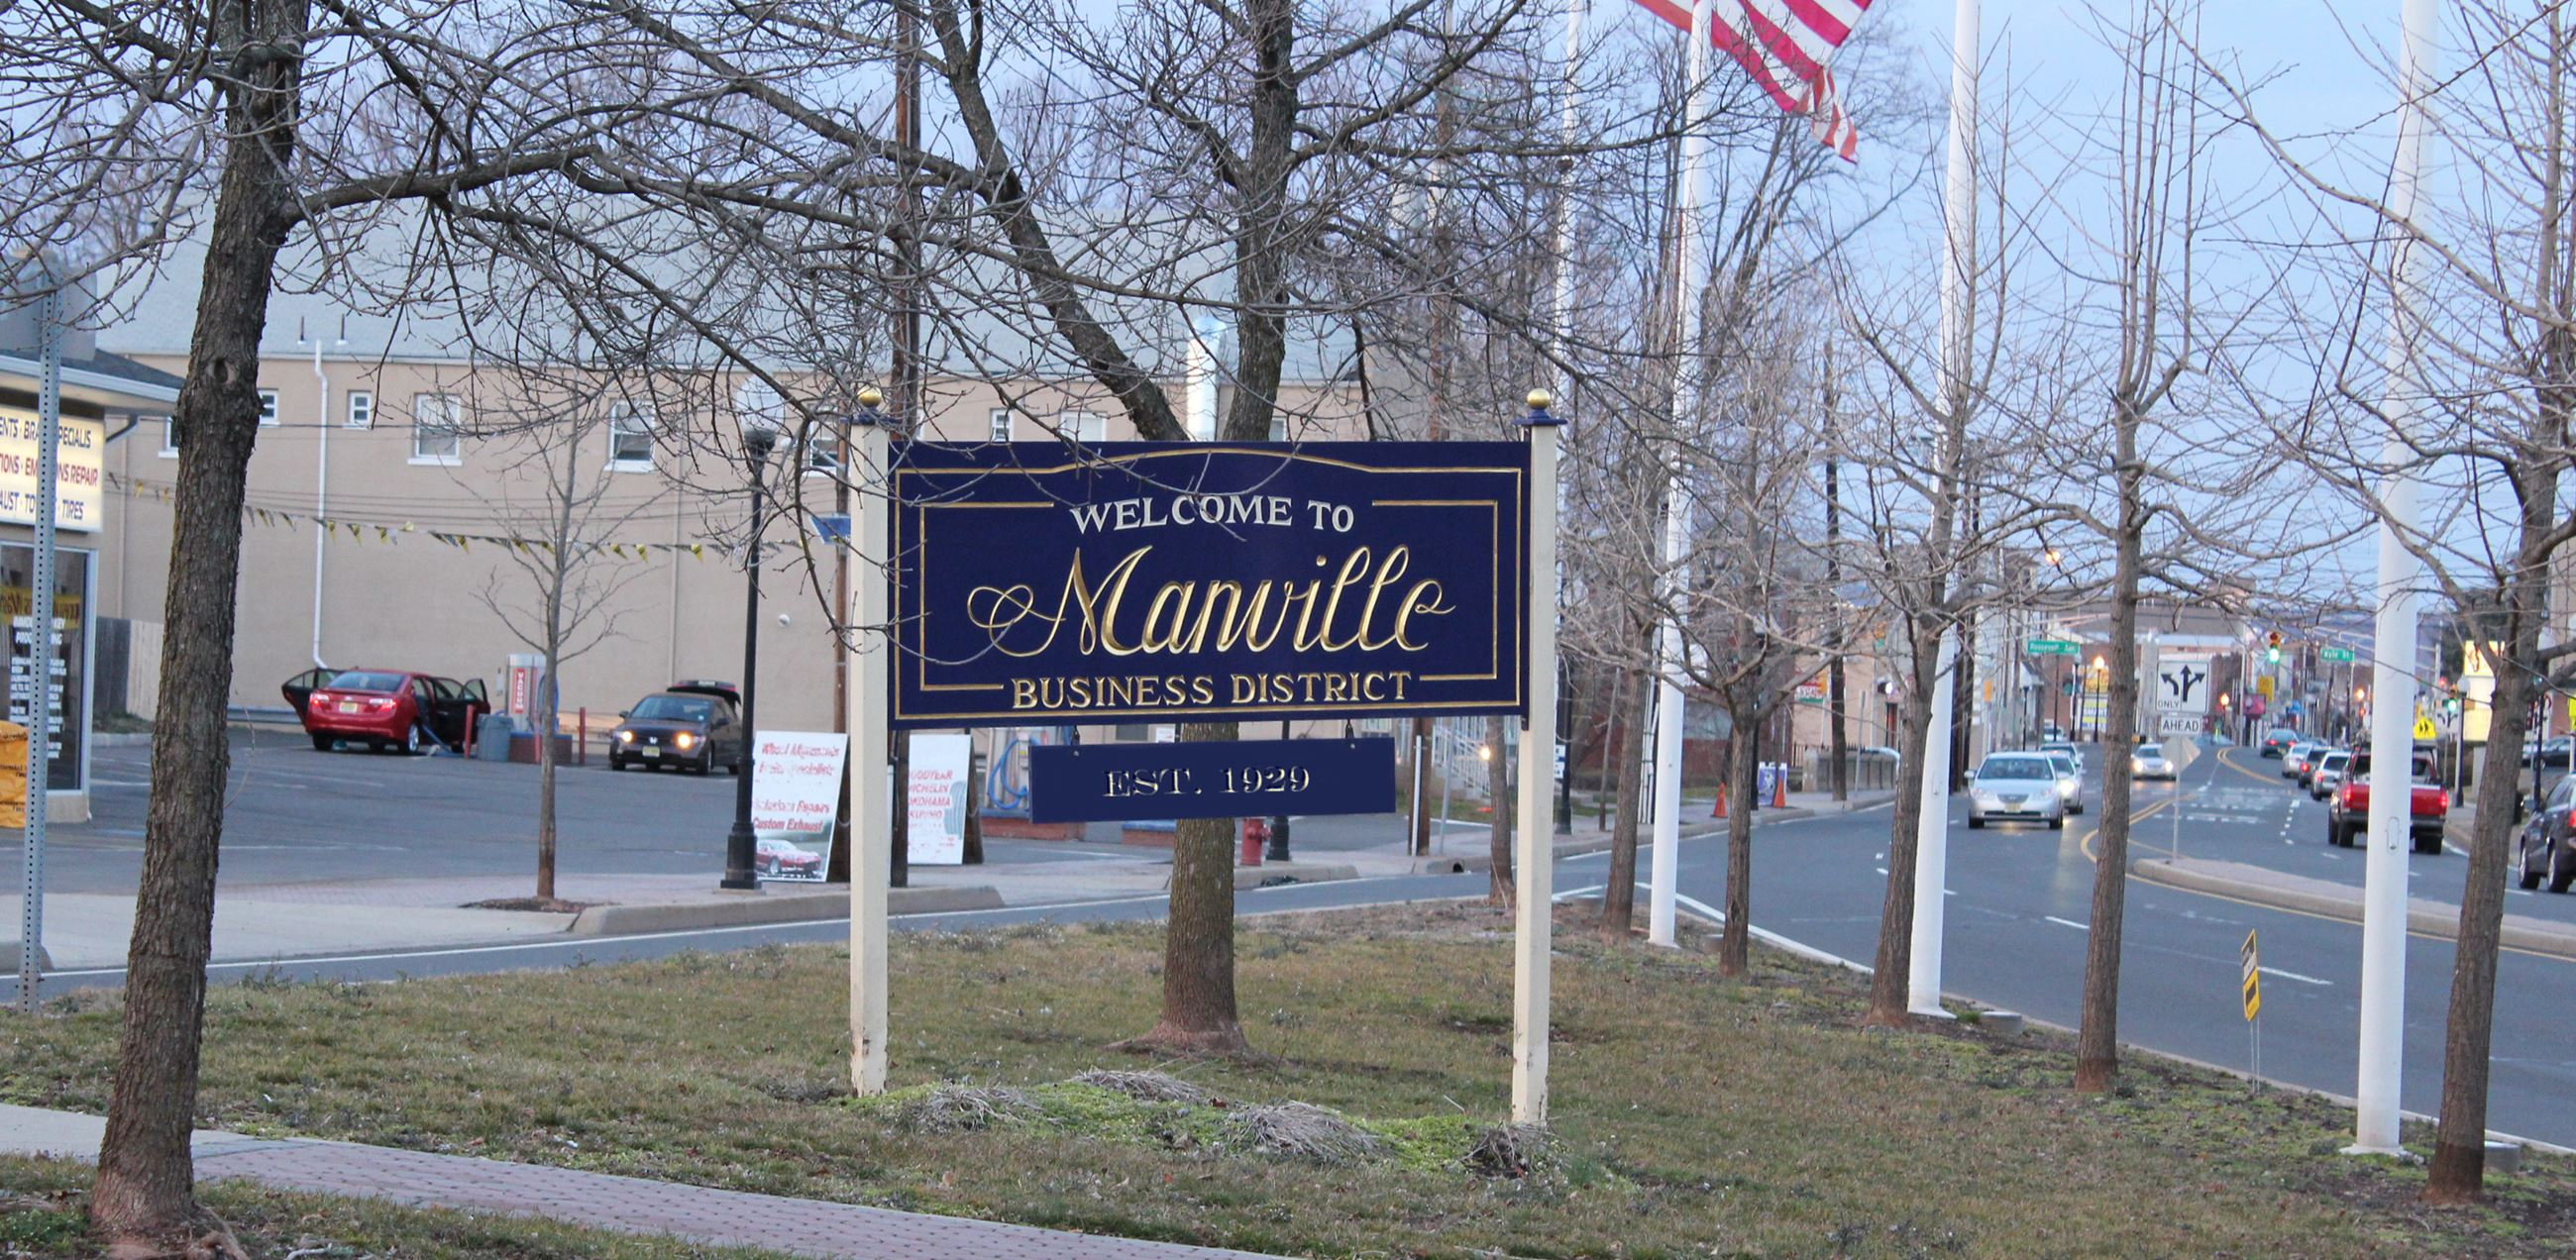 WelcometoManville-est1929